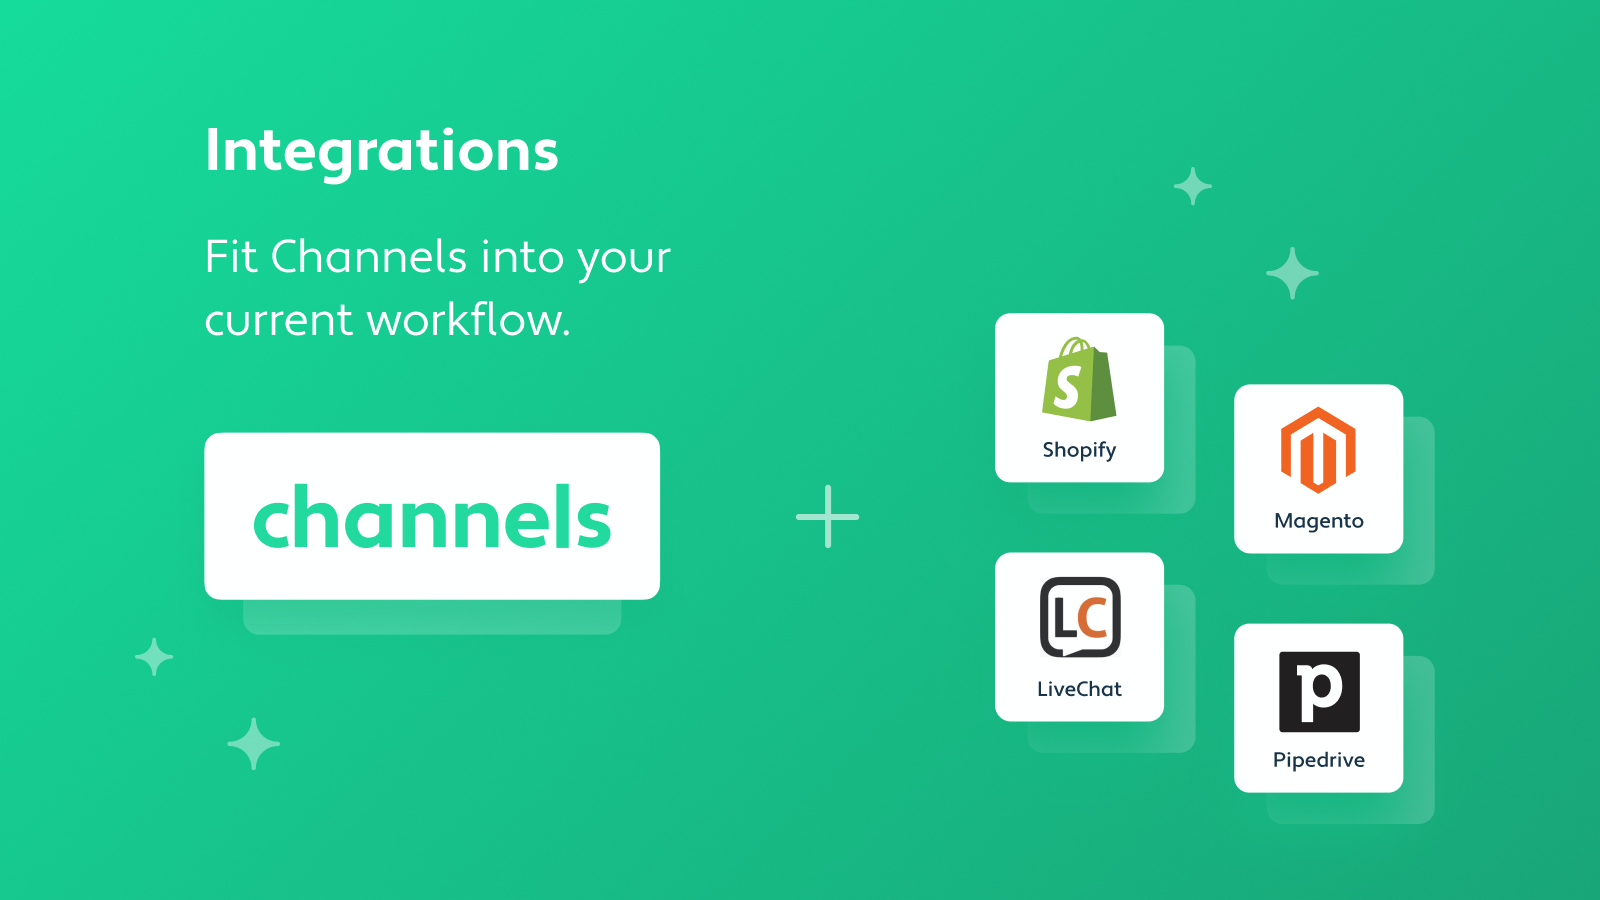 Fit Channels into your workflow with various integrations.